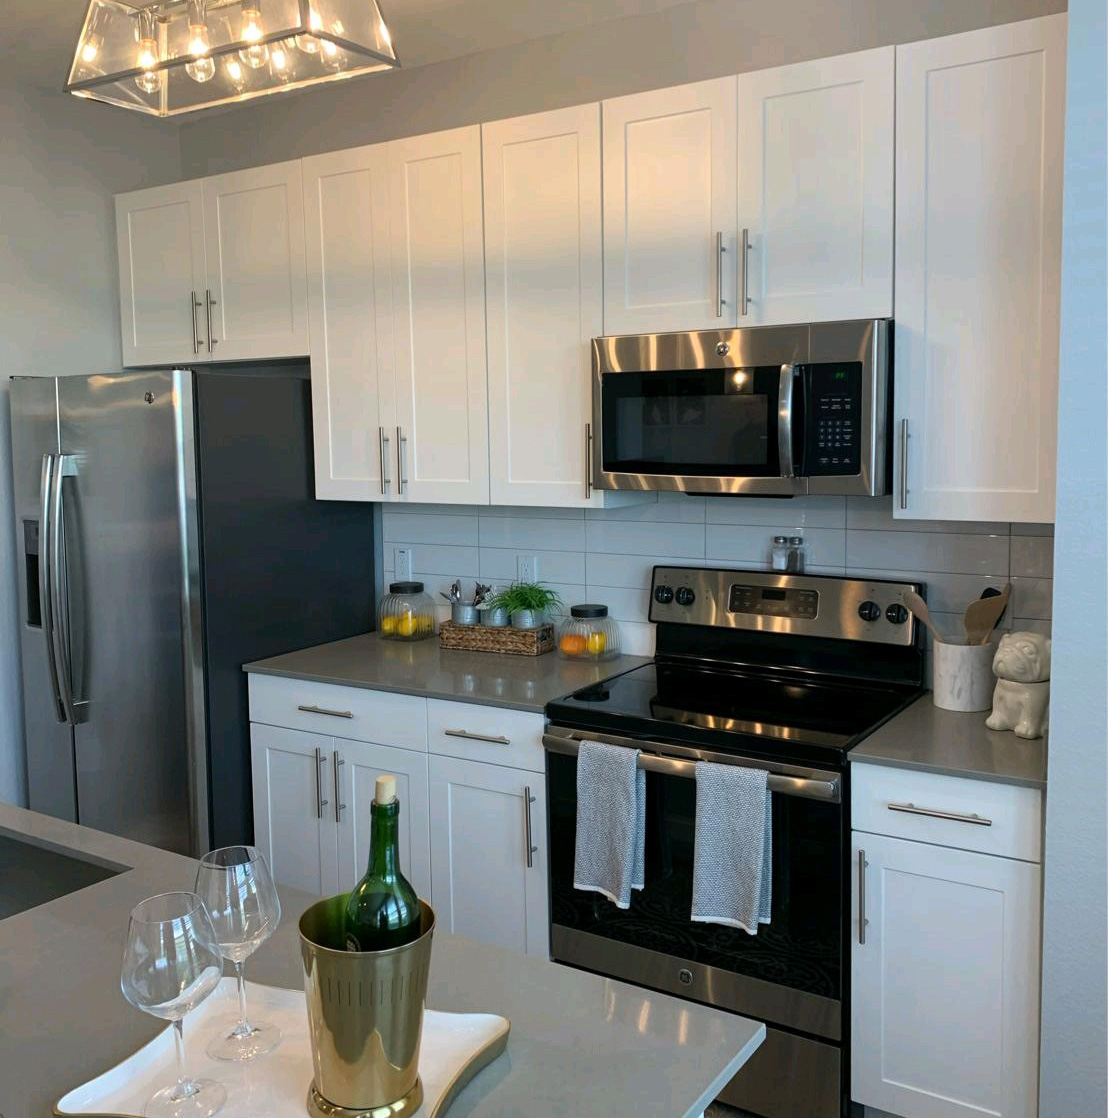 Kitchen cabinetry and countertop for Multifamily Project